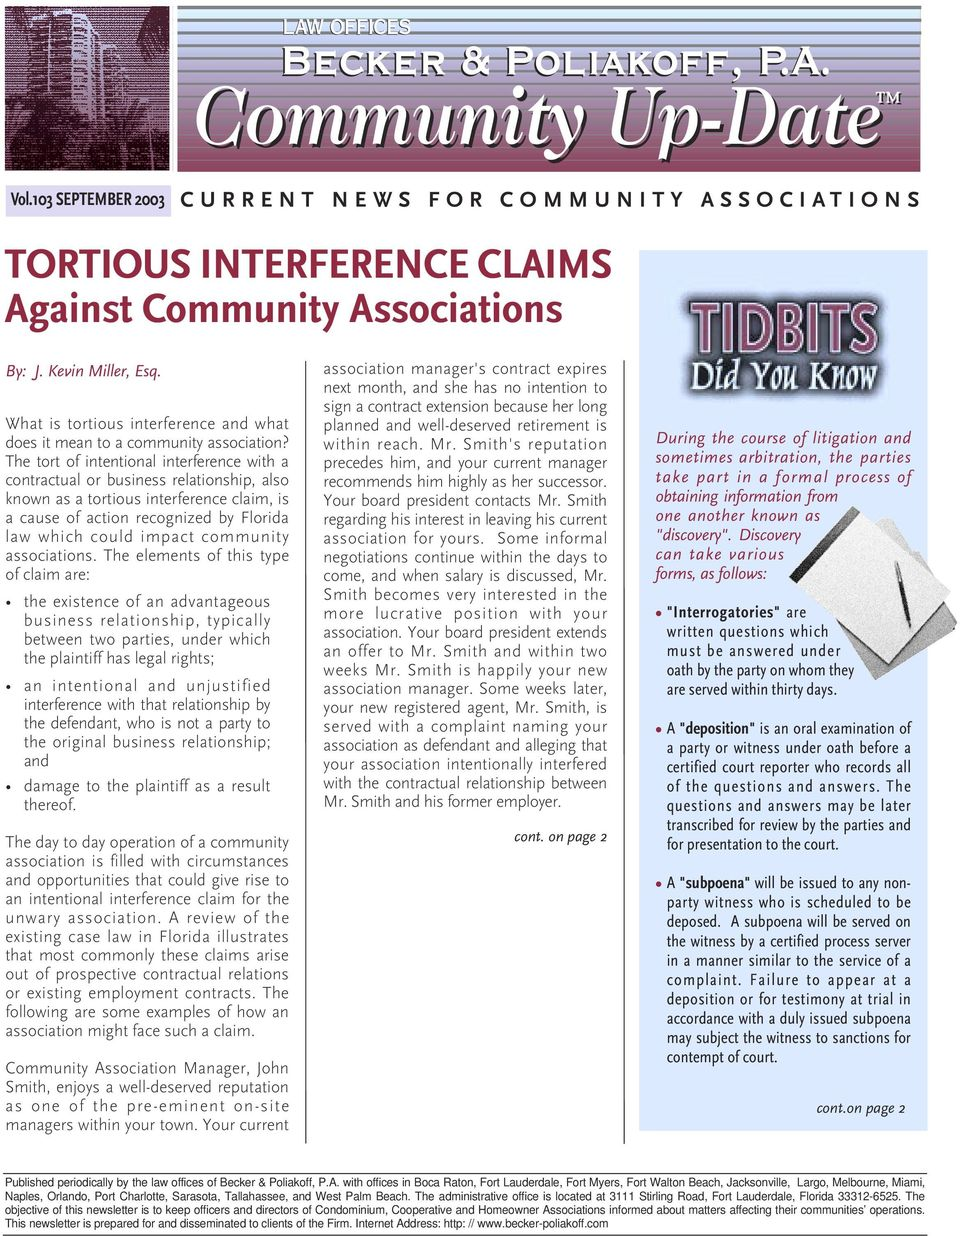 The tort of intentional interference with a contractual or business relationship, also known as a tortious interference claim, is a cause of action recognized by Florida law which could impact